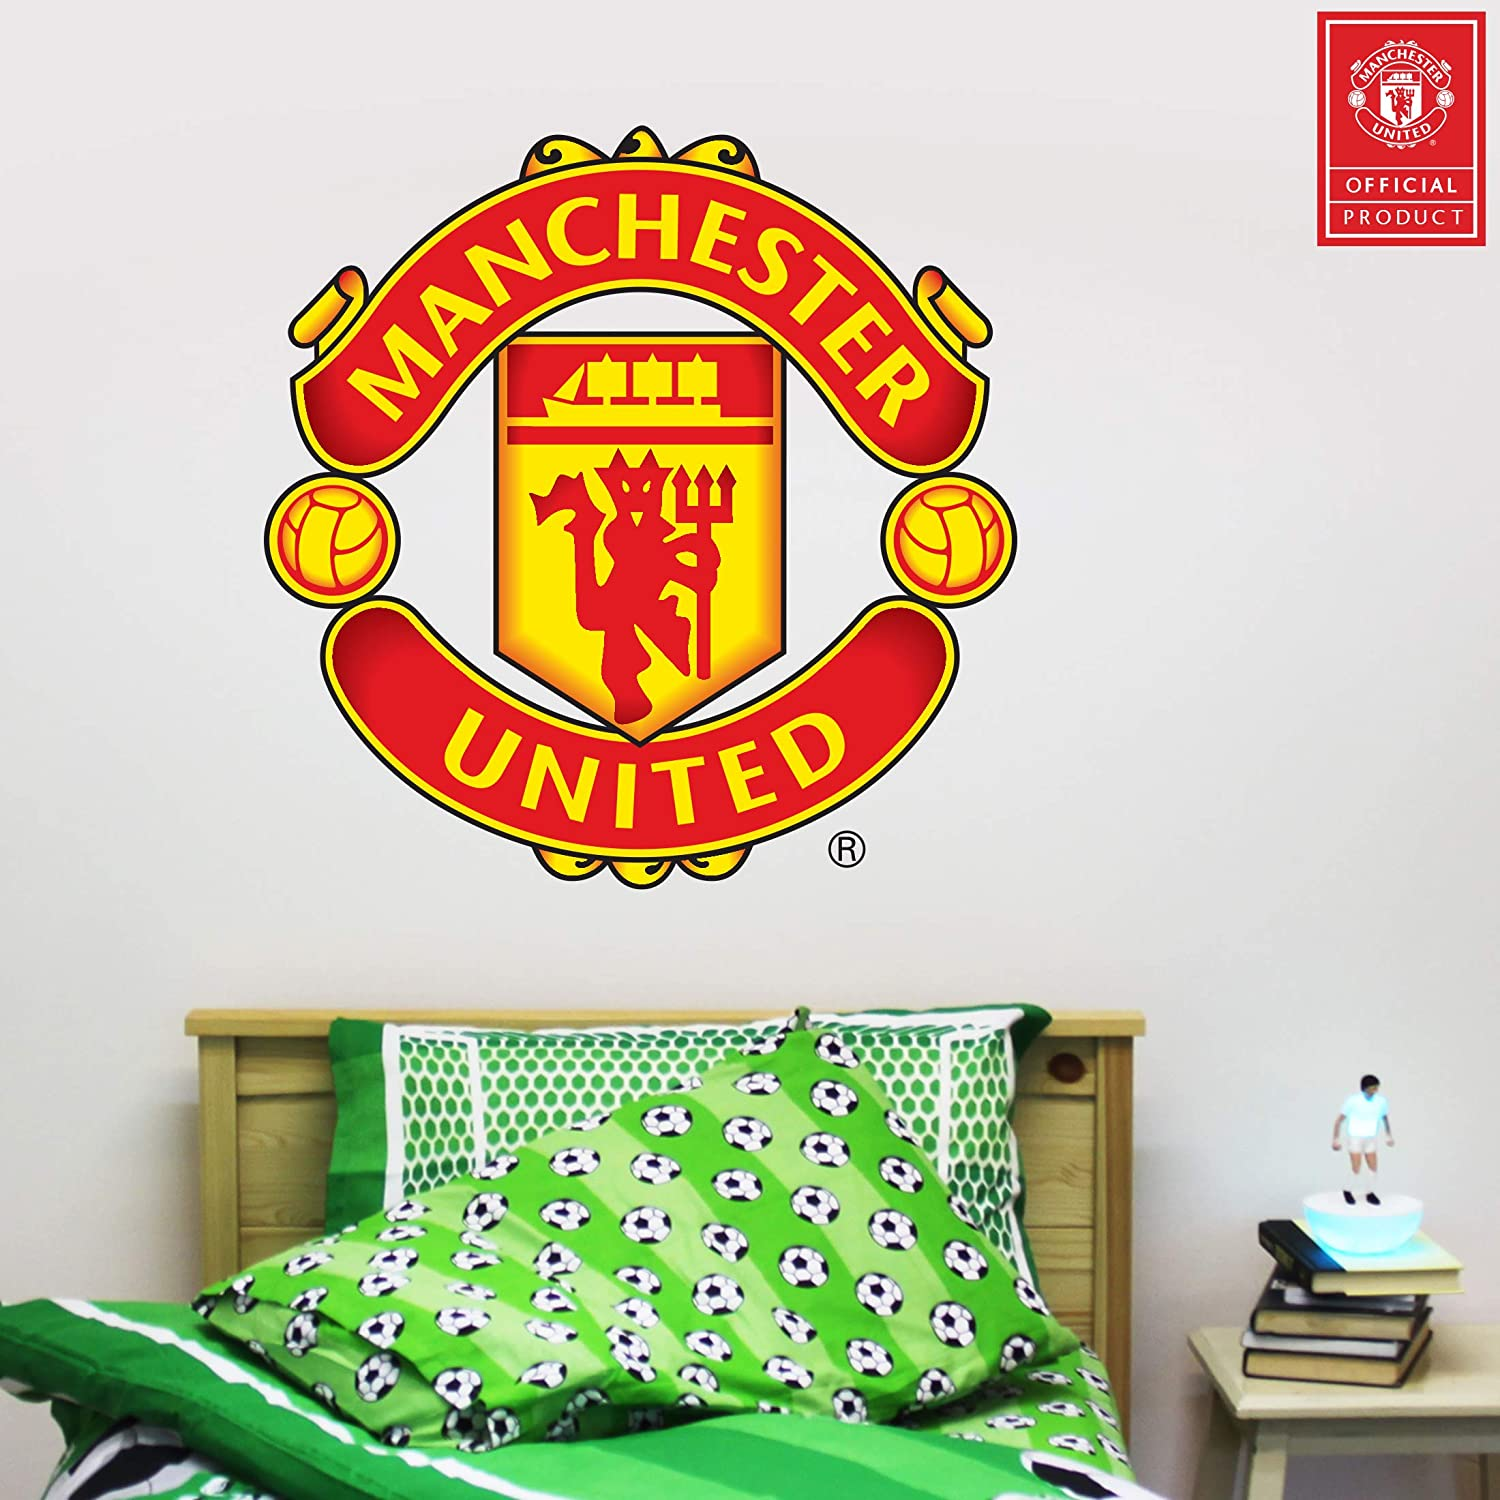 Amazon com beautiful game ltd manchester united football club official crest wall sticker man utd logo decal set vinyl poster print mural art 120cm